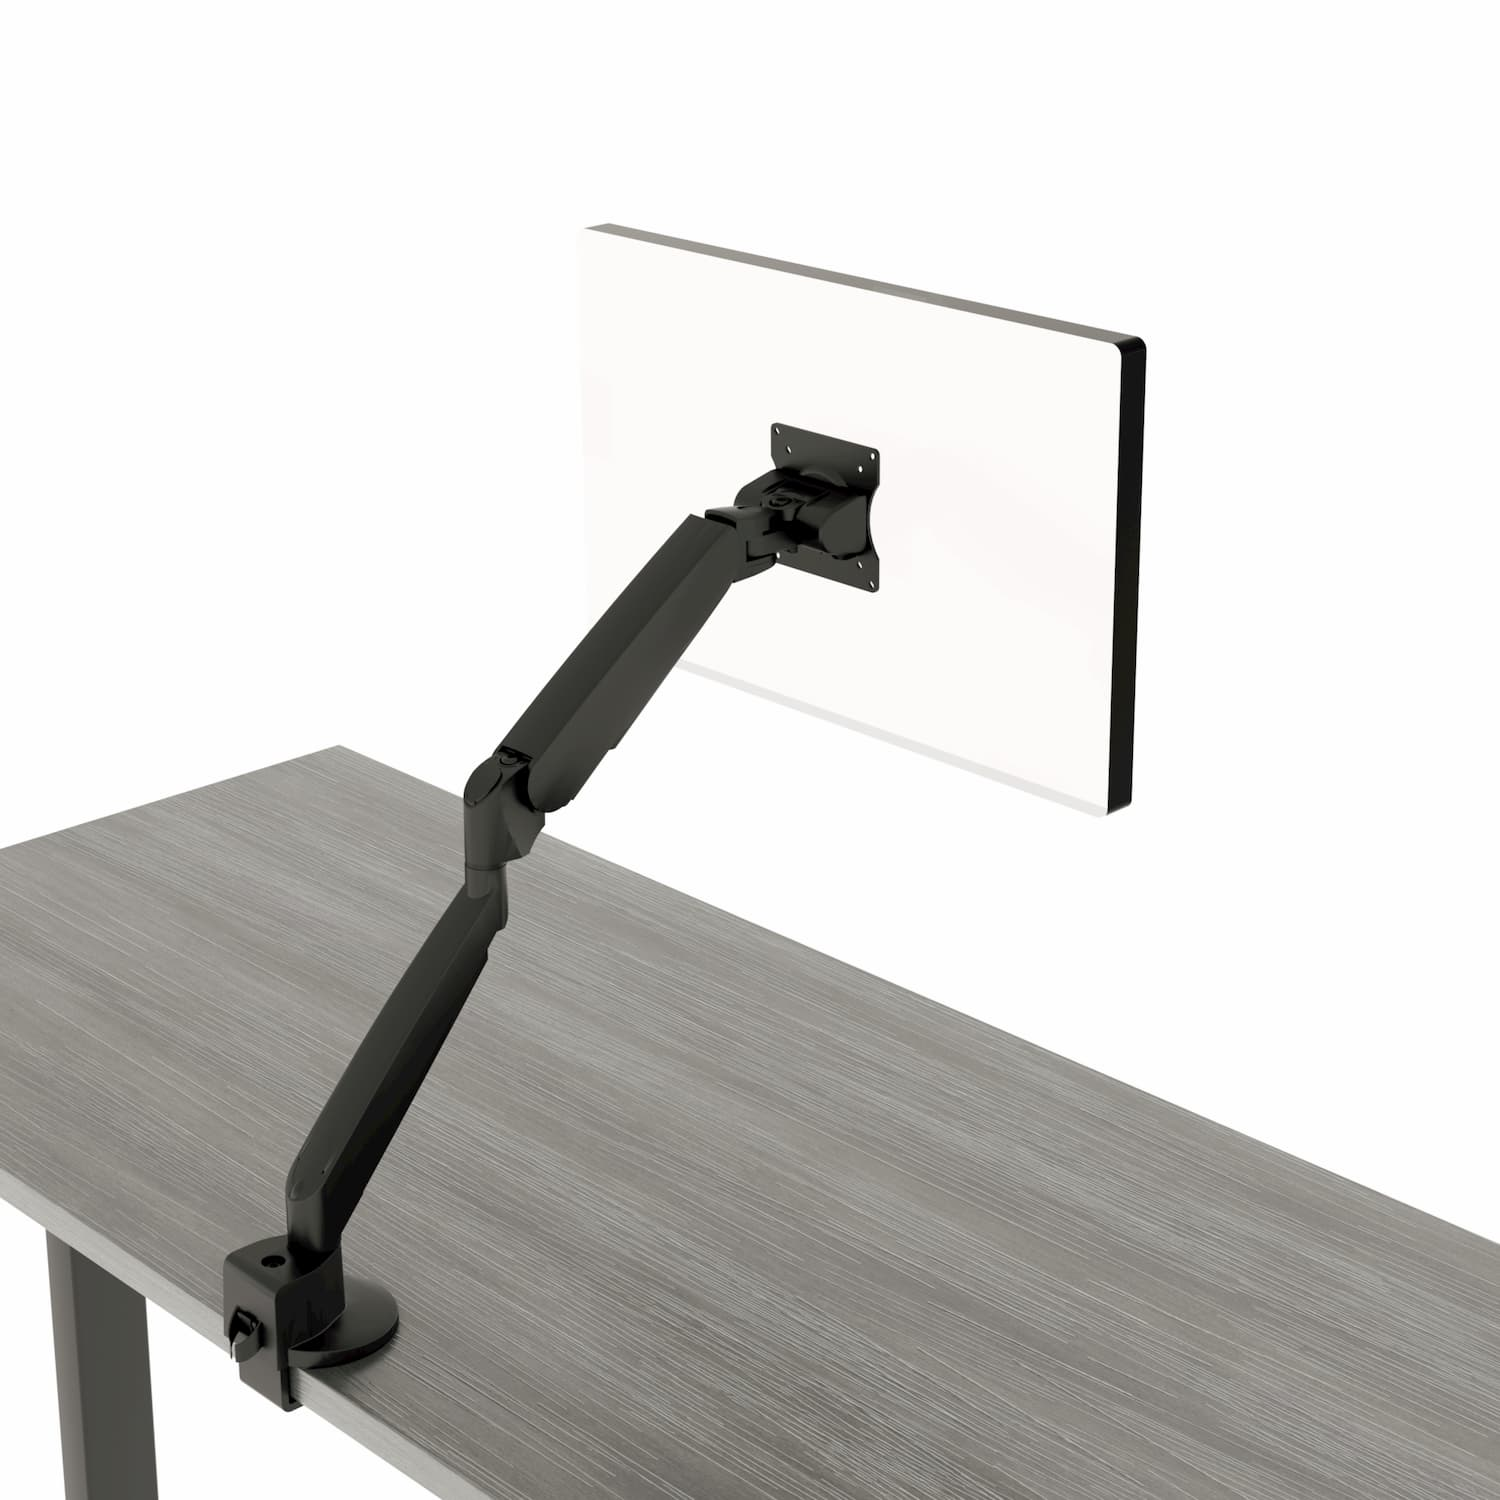 conform-single-hd-articulating-monitor-arm